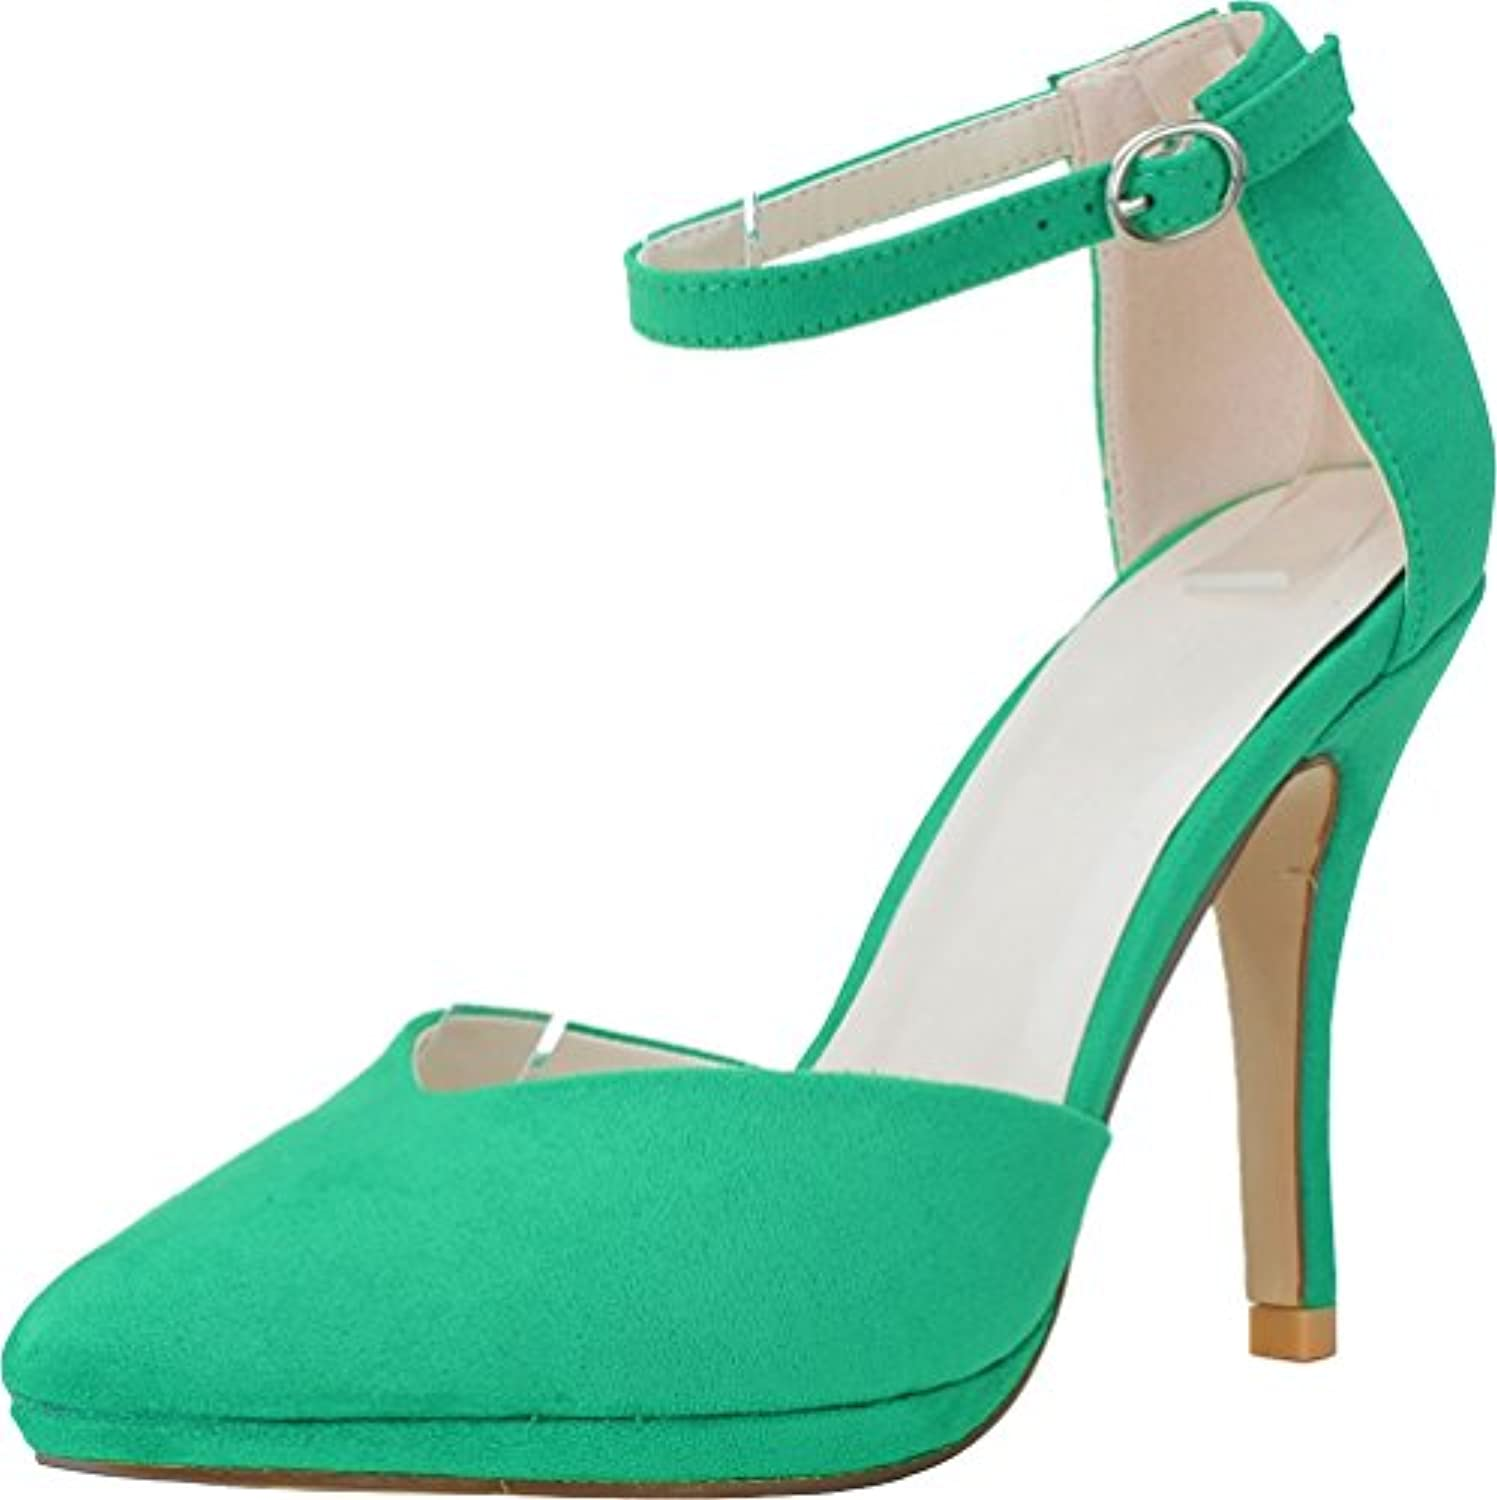 Find Nice , Bride Green, Cheville Femme - Vert - Green, Bride 36.5 EUB07FDDZHJWParent 0060ed